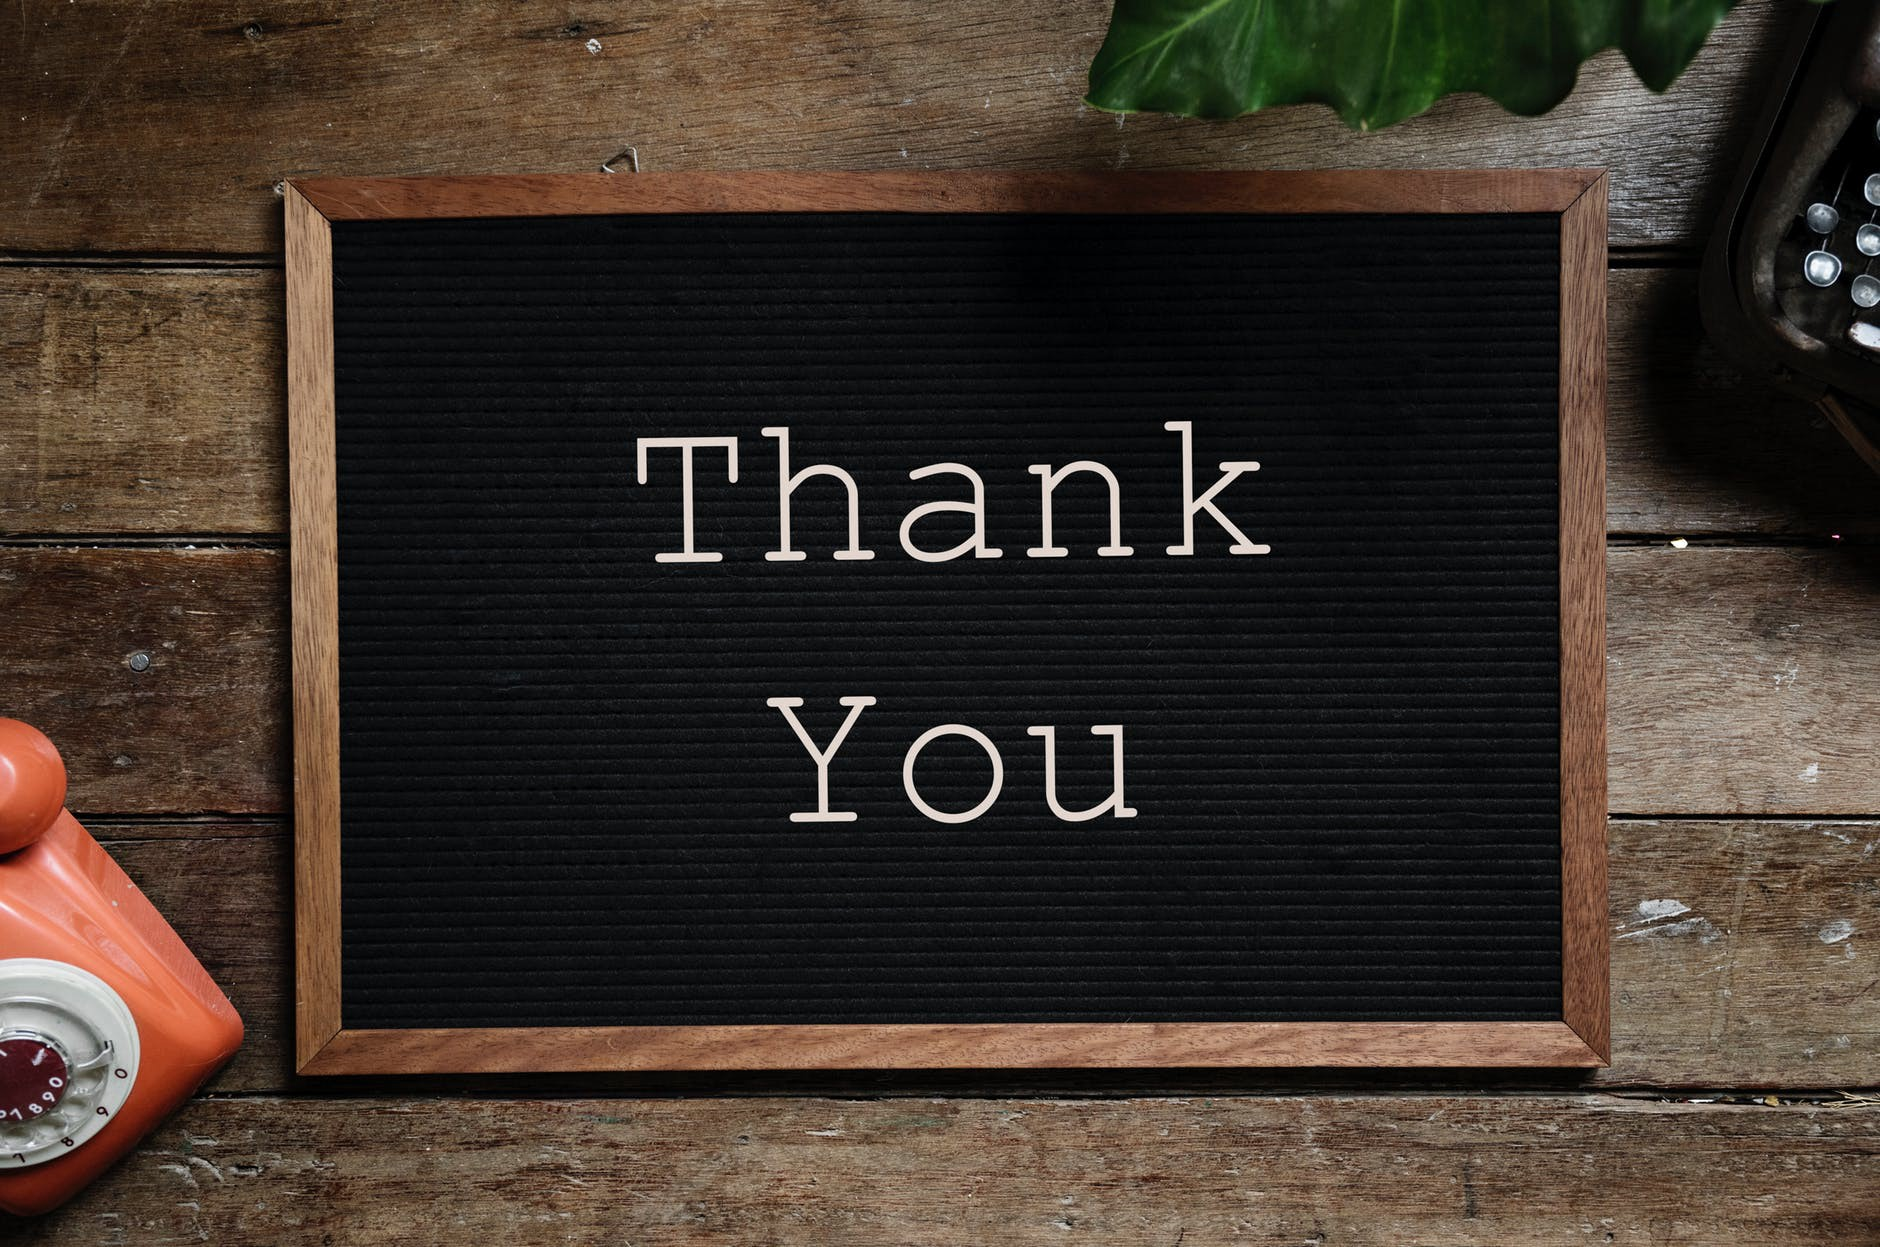 A sign which says thank you